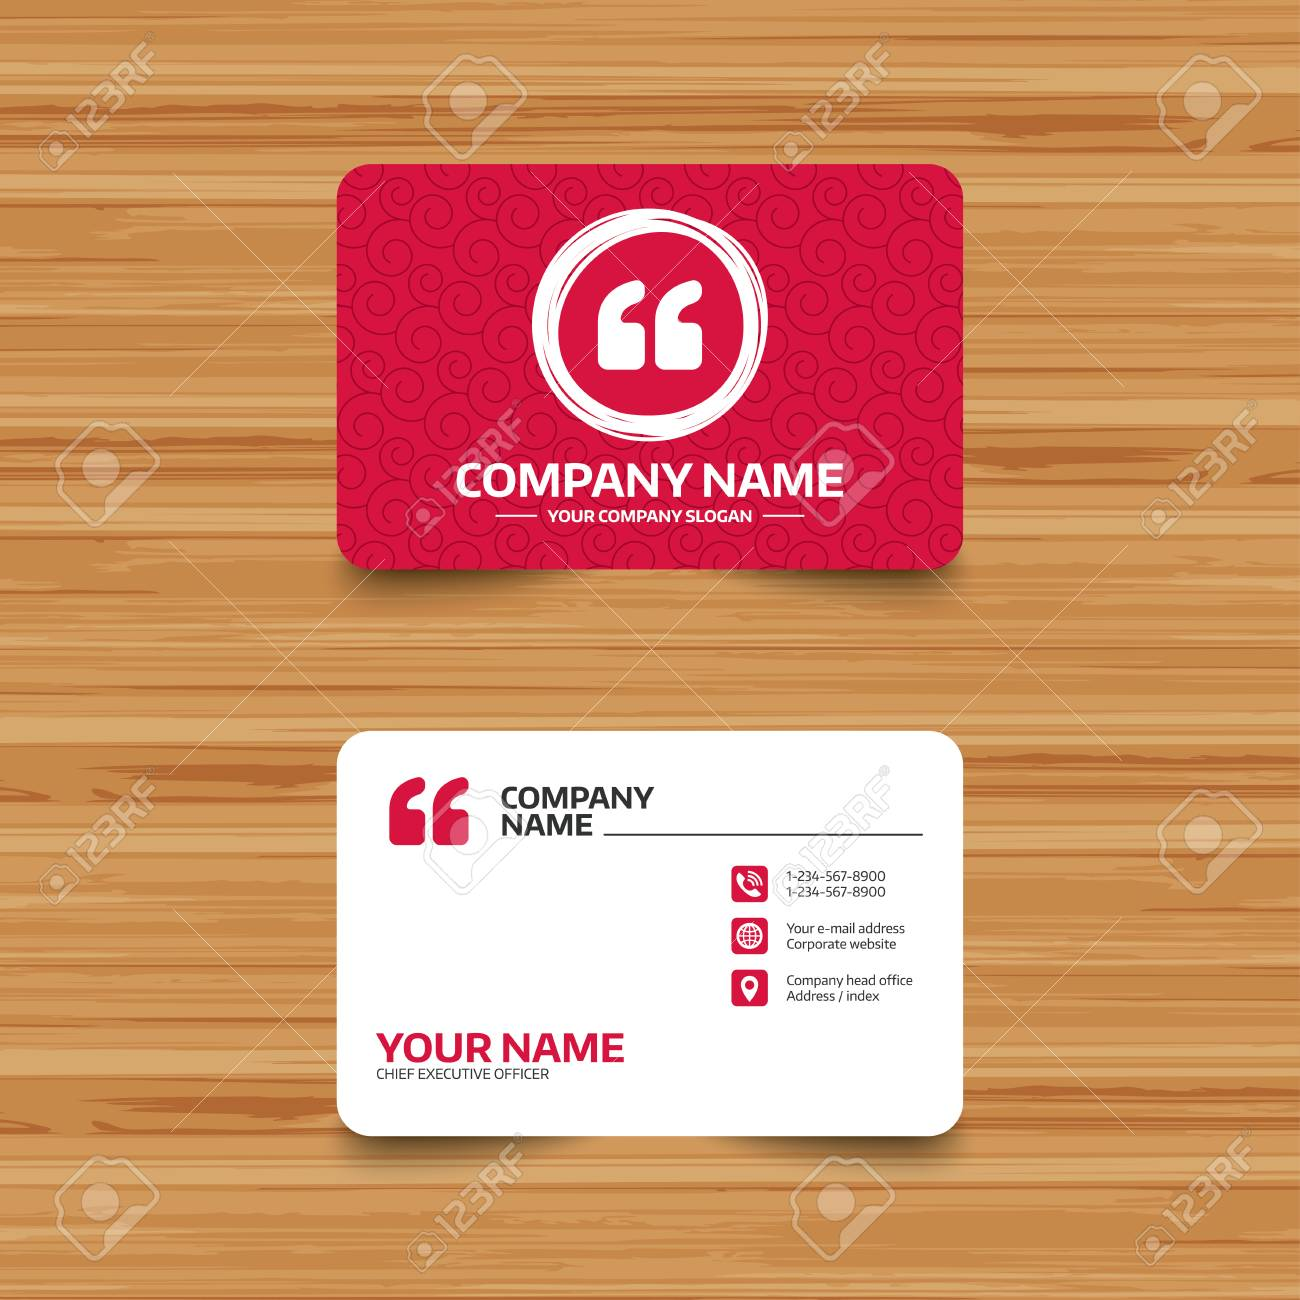 Business card design quotation gallery card design and card template business cards quotation gallery card design and card template business card template with texture quote sign colourmoves